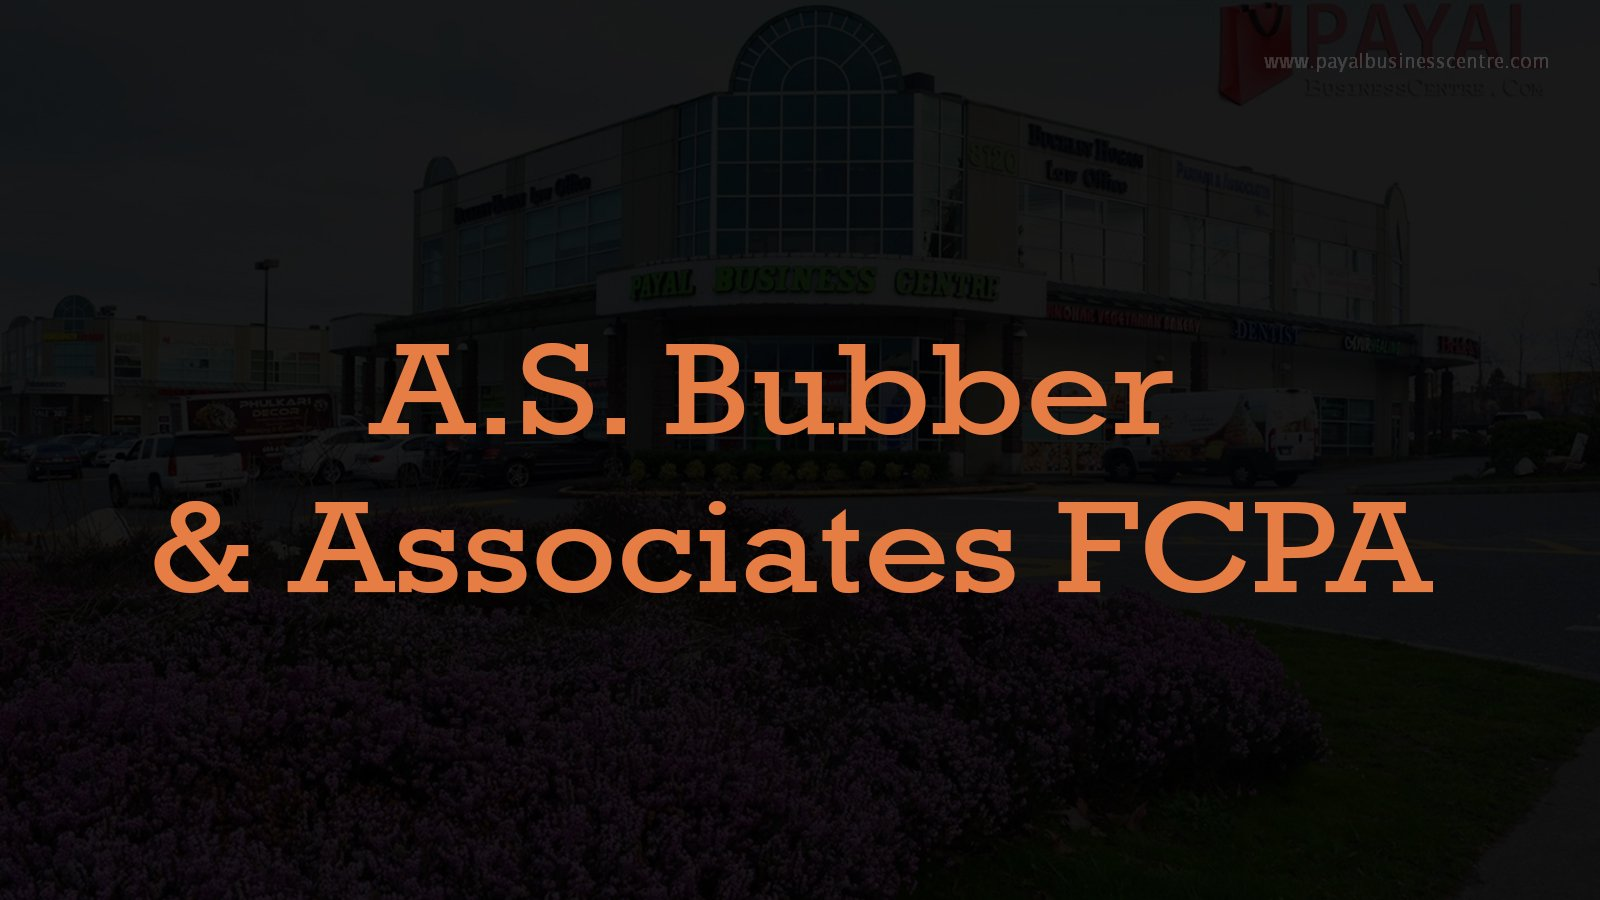 A.S. Bubber & Associates FCPA - Accountant - 8120 128 St